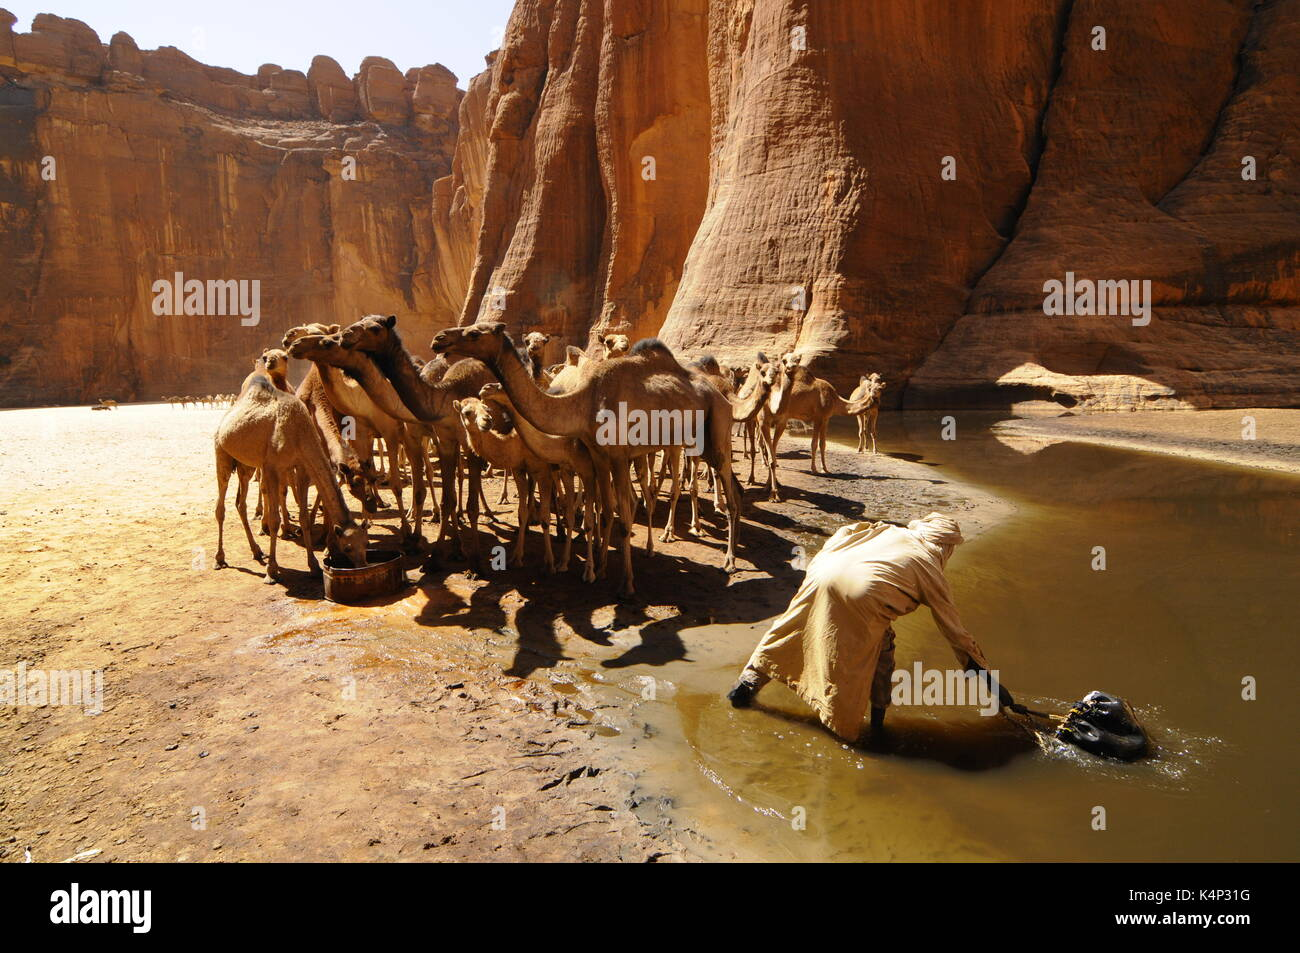 Camels in Guelta Archei, Chad, Africa - Stock Image